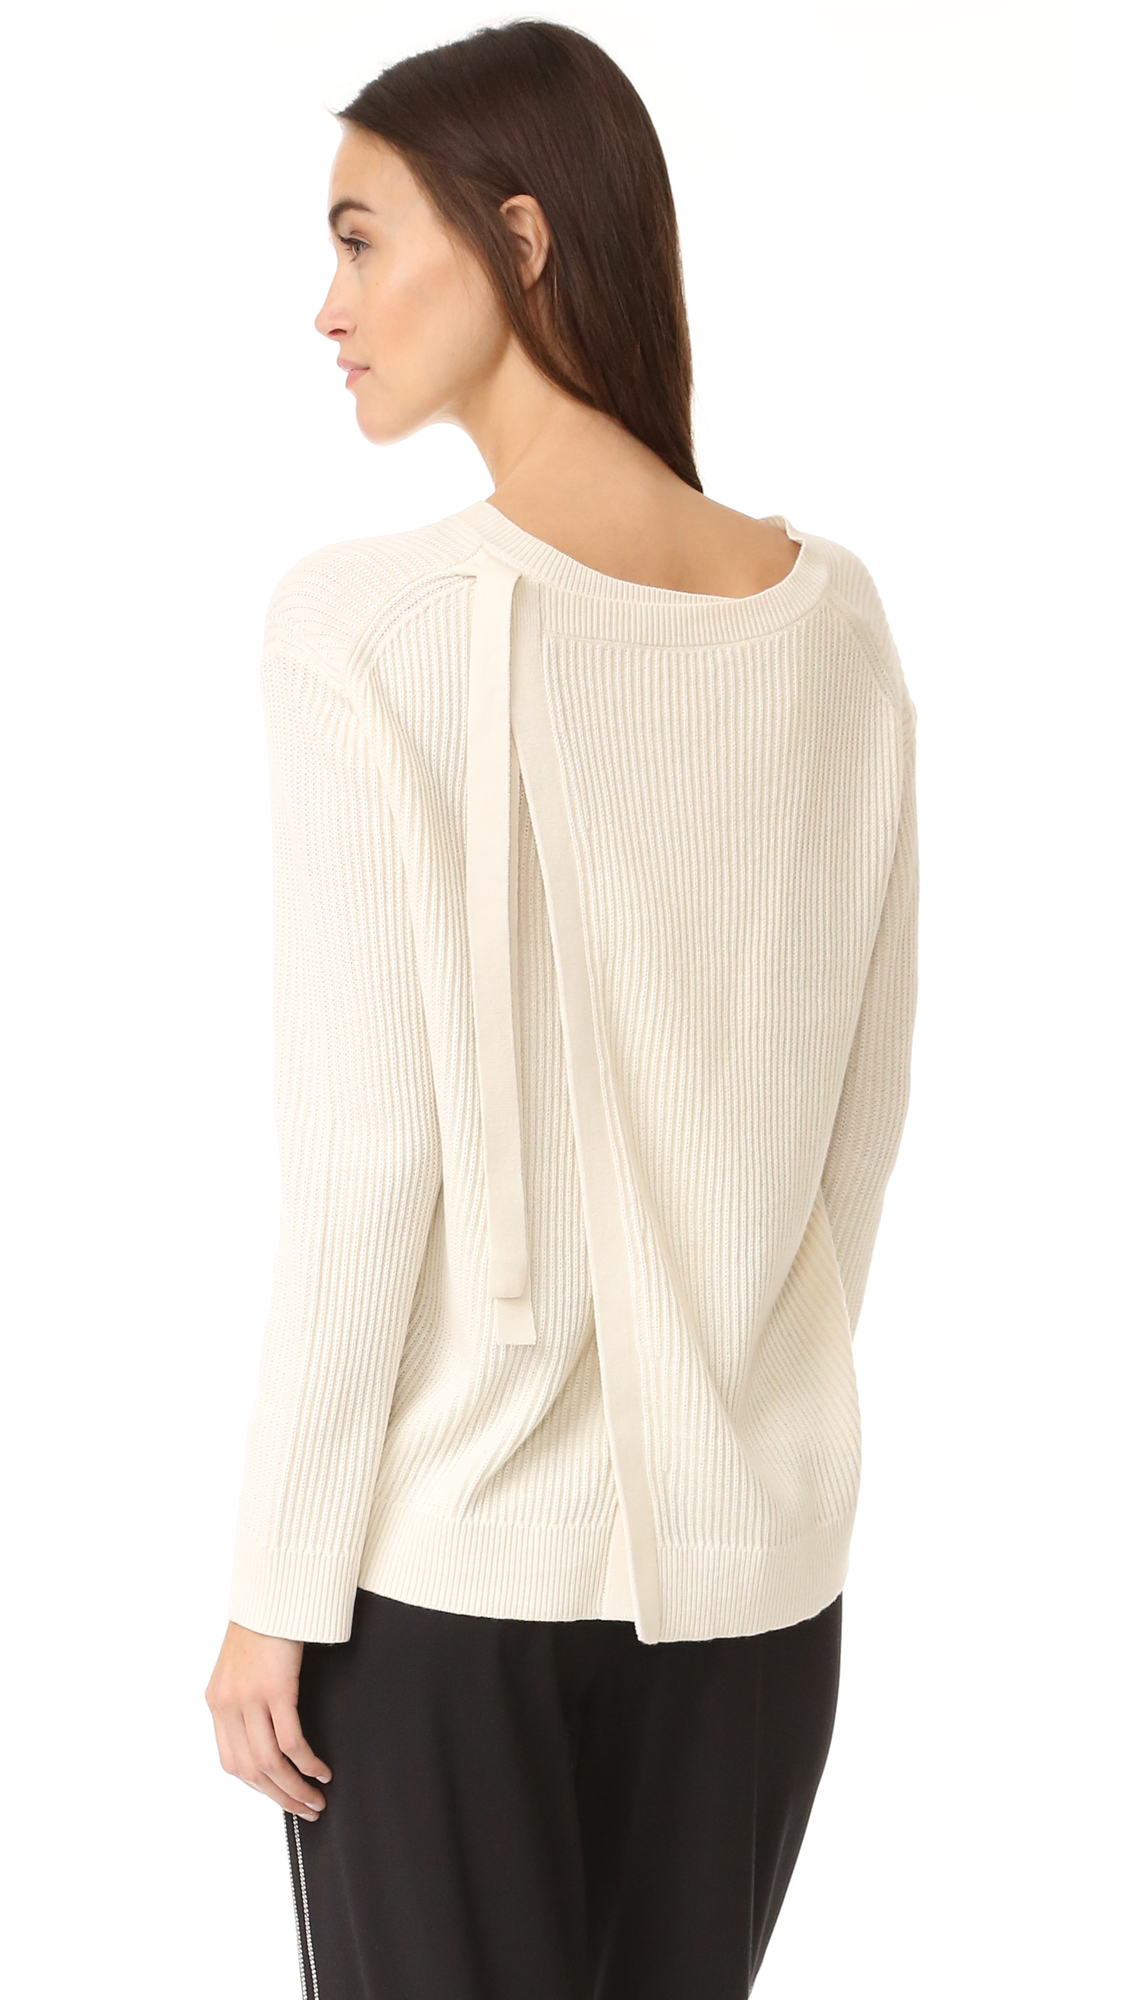 Vince Slit Back Sweater - Off White at Shopbop